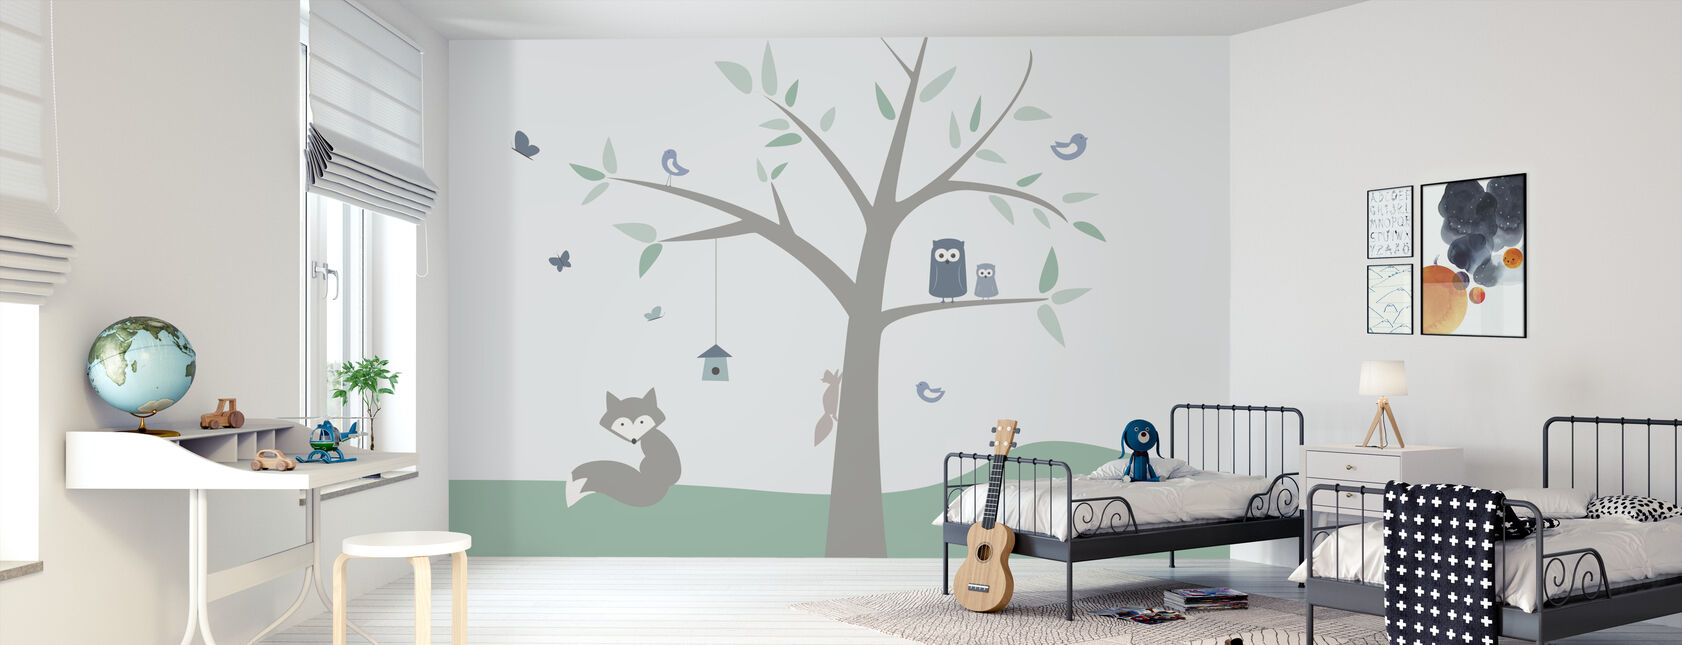 Dierenboom - groen - Behang - Kinderkamer